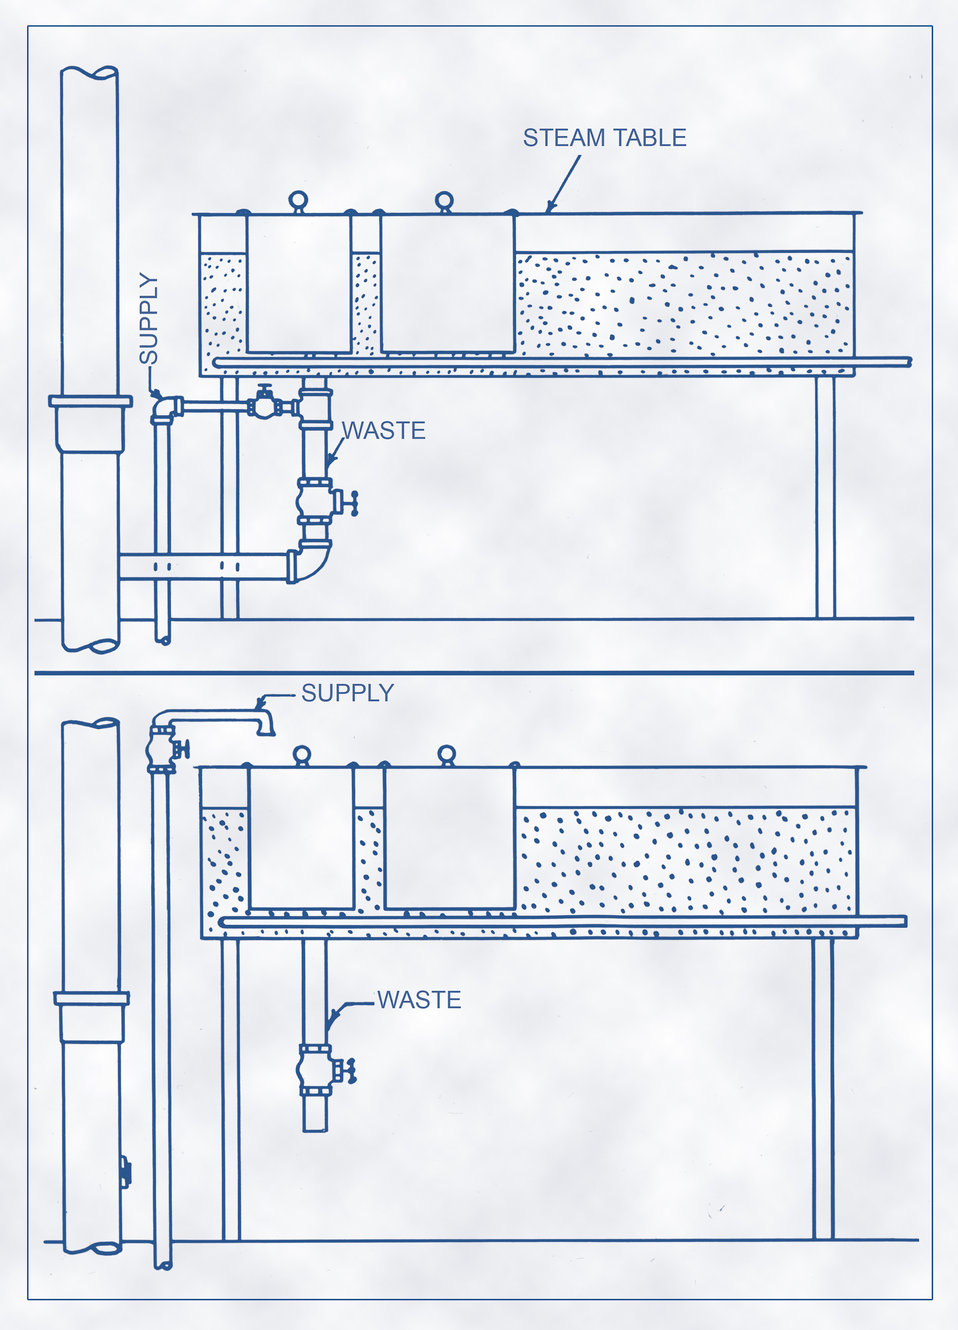 This historic 1936 diagram, which had been digitally enhanced and colorized, illustrated two possible plumbing configurations of a steam tab